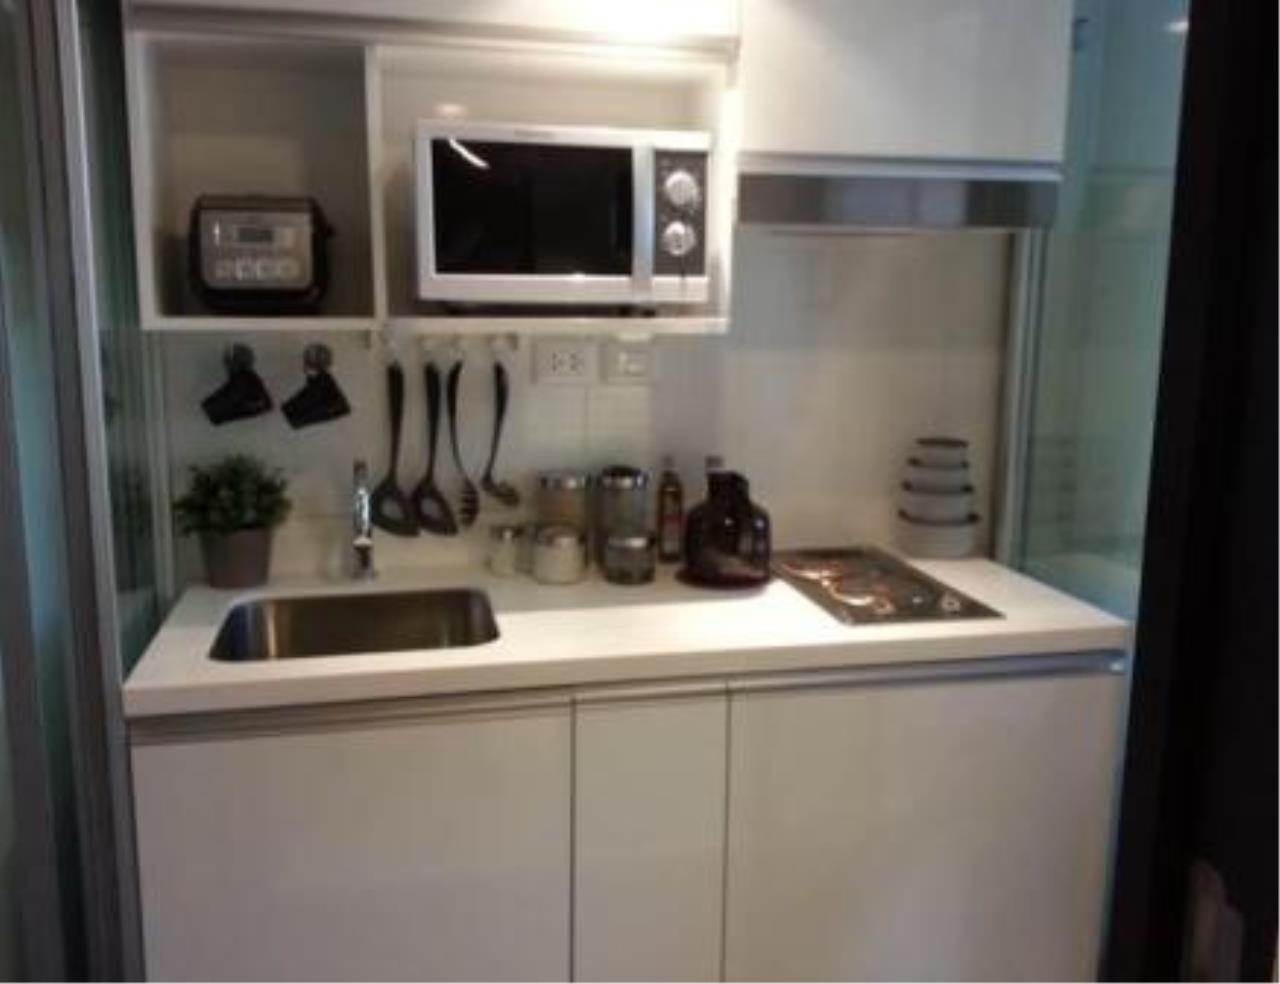 BKK Condos Agency's One bedroom condo for sale or for rent with tenant at Ashton Morph 38  7